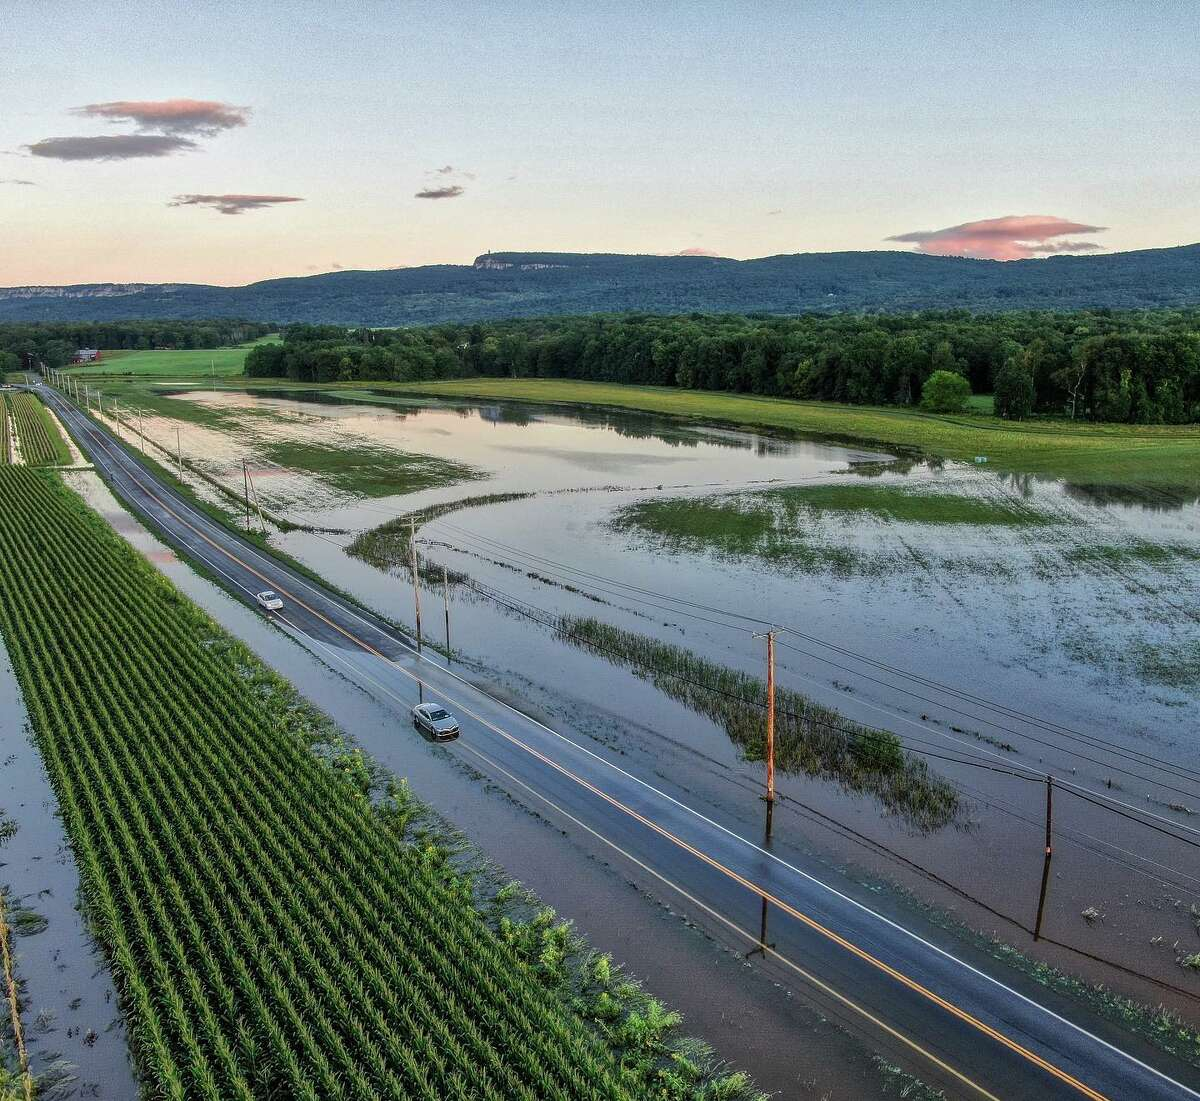 Wallkill View Farm, located on the New Paltz flats that were heavily flooded, pictured above, harvested as much as they could before last week's rain.